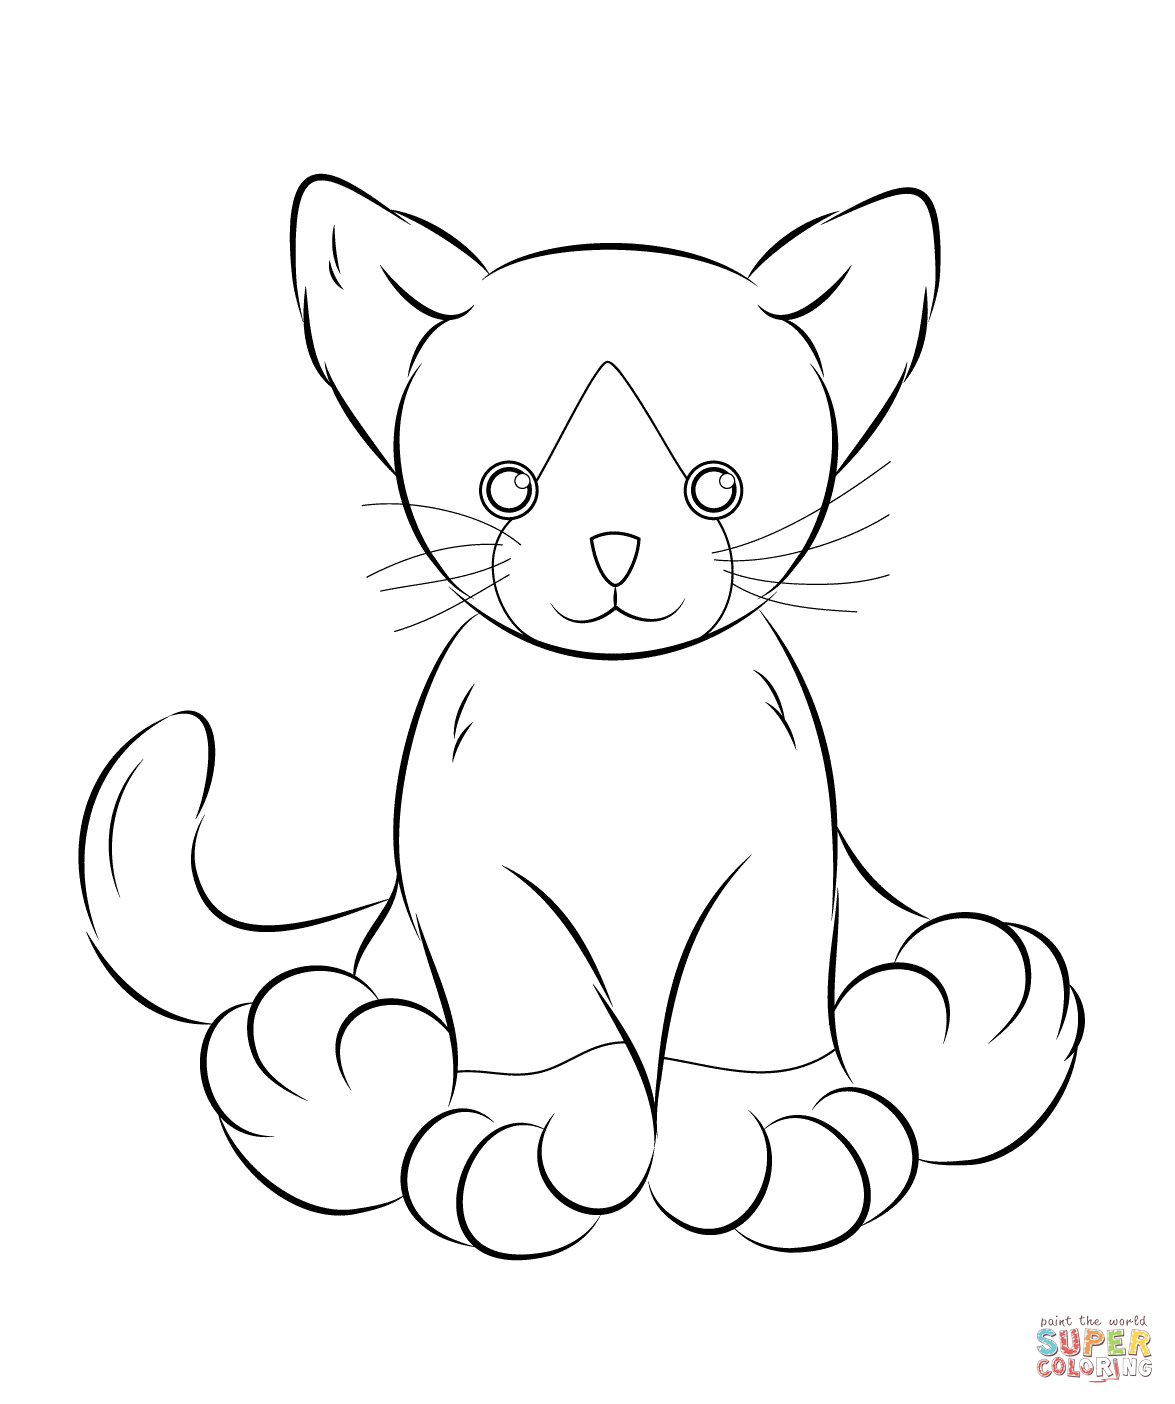 Webkinz coloring pages to download and print for free